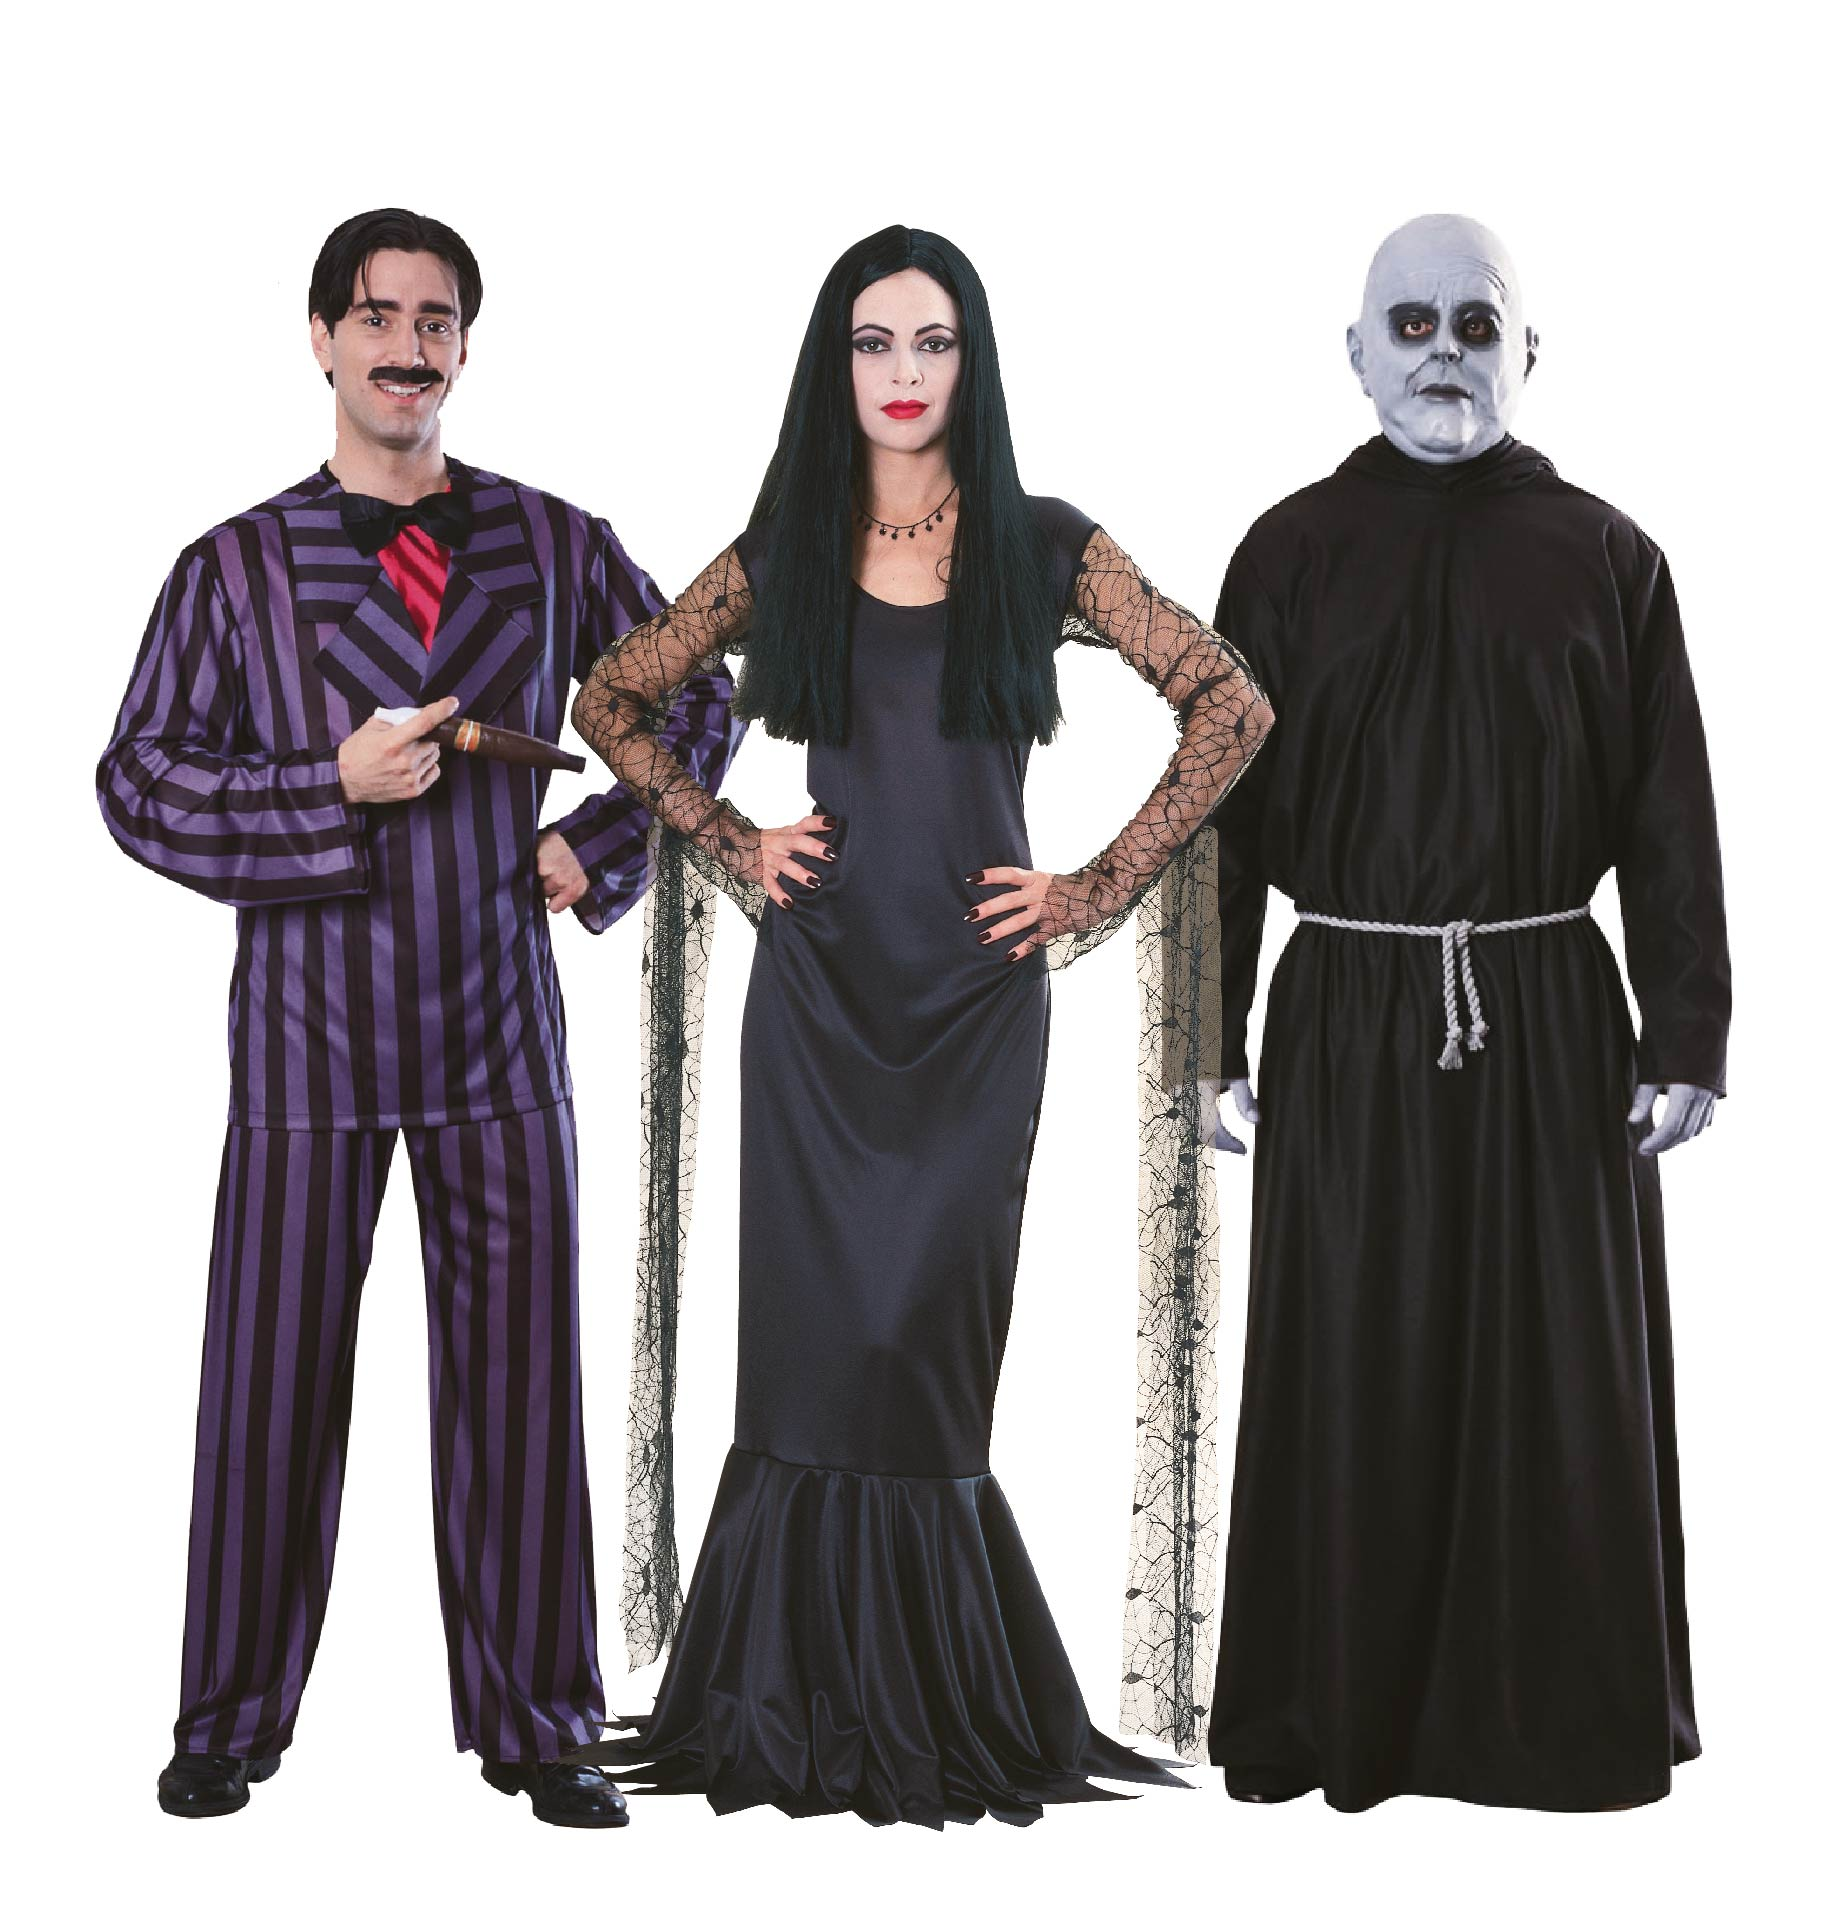 People wearing Addams family costumes including Morticia, Gomez and Uncle Fester.